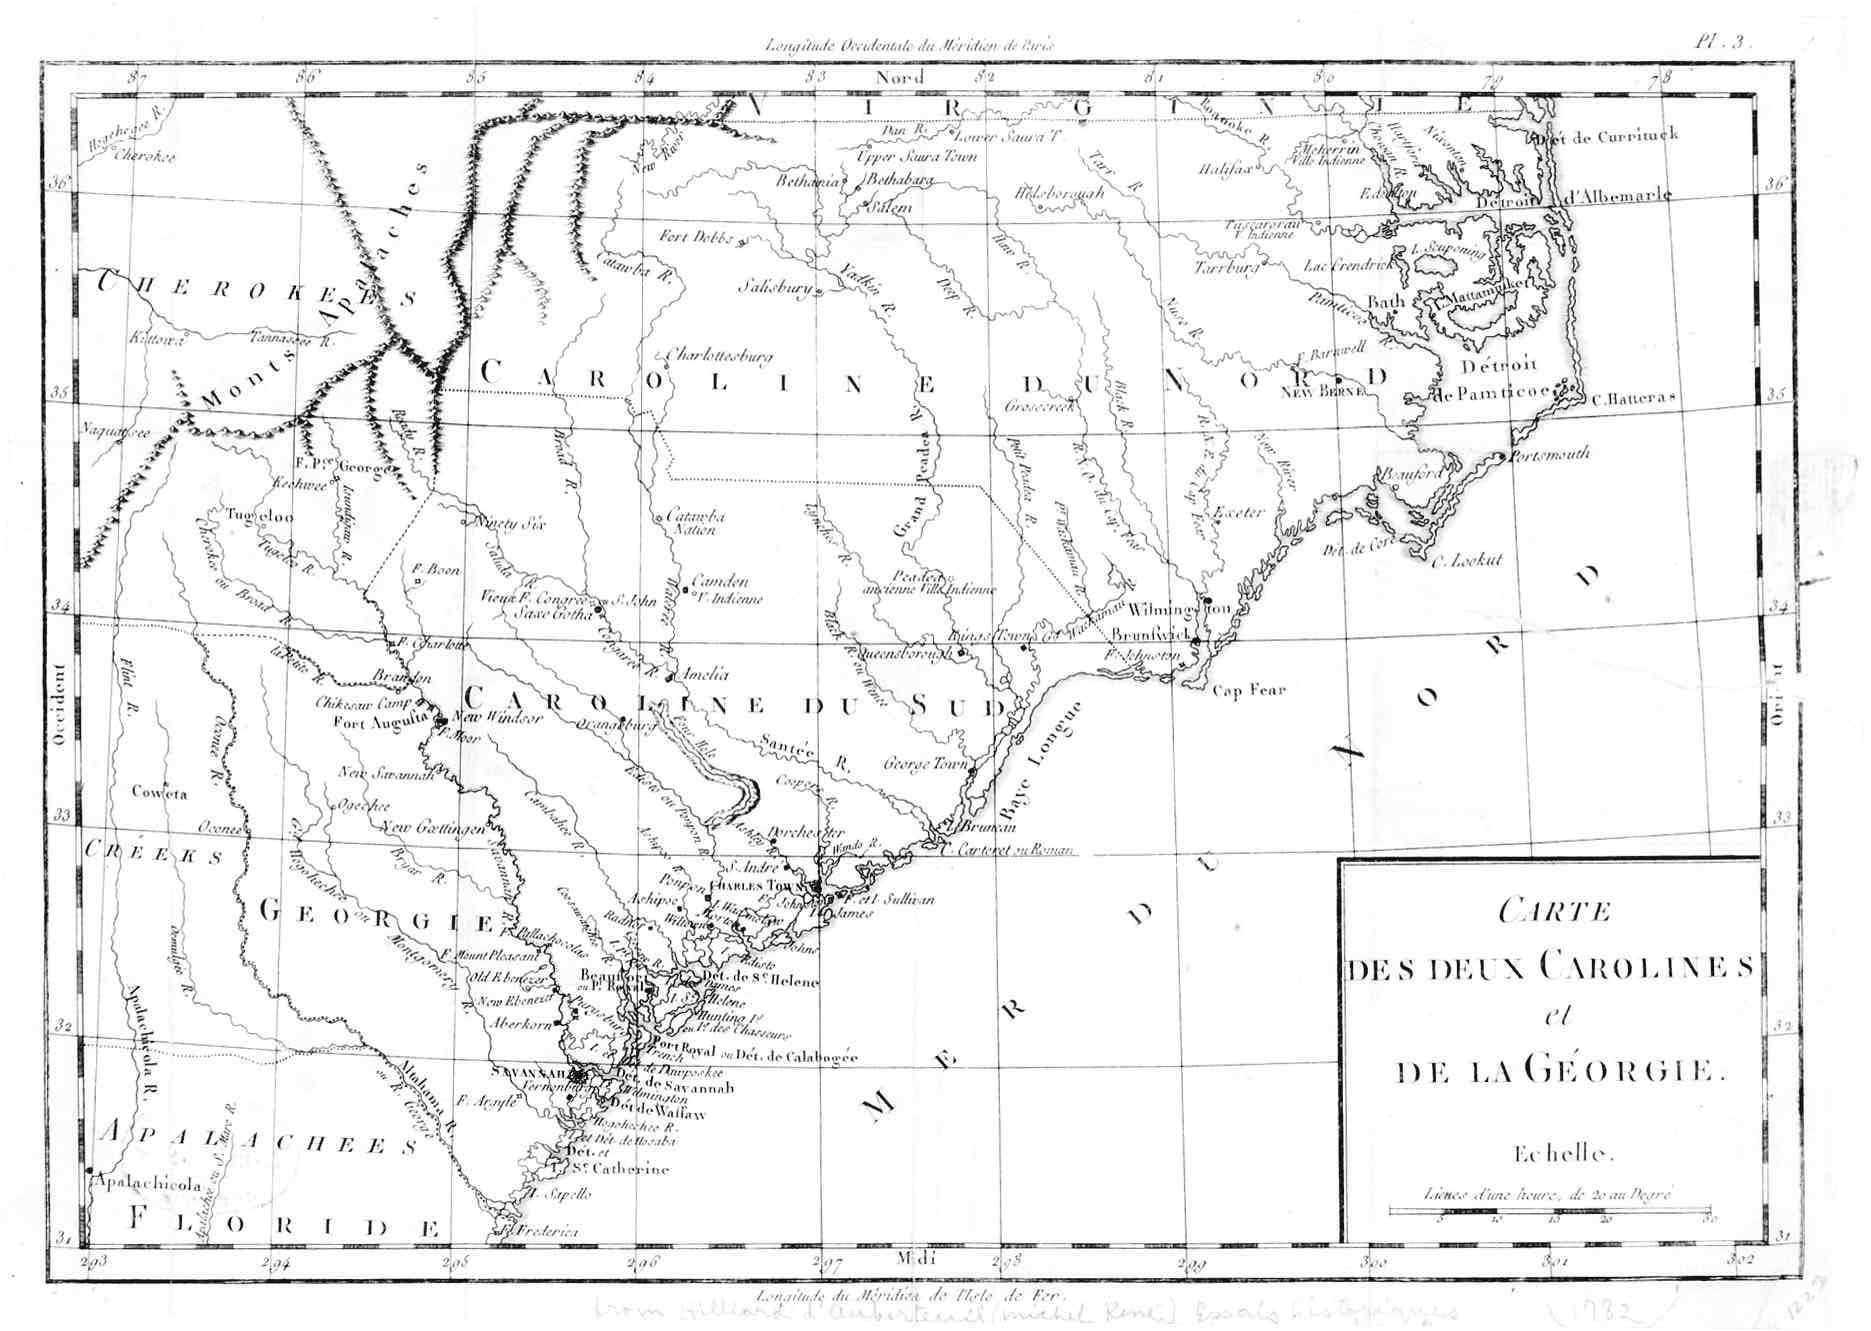 Hargrett Liry Rare Map Collection - Revolutionary America on map of georgia reidsville, map of georgia africa, map of nc and ga, map of georgia hollywood, map of georgia atlanta, map of georgia piedmont, florida georgia south carolina, map of georgia florida, map of georgia the country, map of georgia highlands, map of north ga, map of georgia albany, map of georgia blue ridge mountains, map of south carolina and florida, map of georgia by region, map of georgia altamaha river, csra map georgia south carolina, things do murphy north carolina, map of south carolina and georgia, map of georgia coastal region,